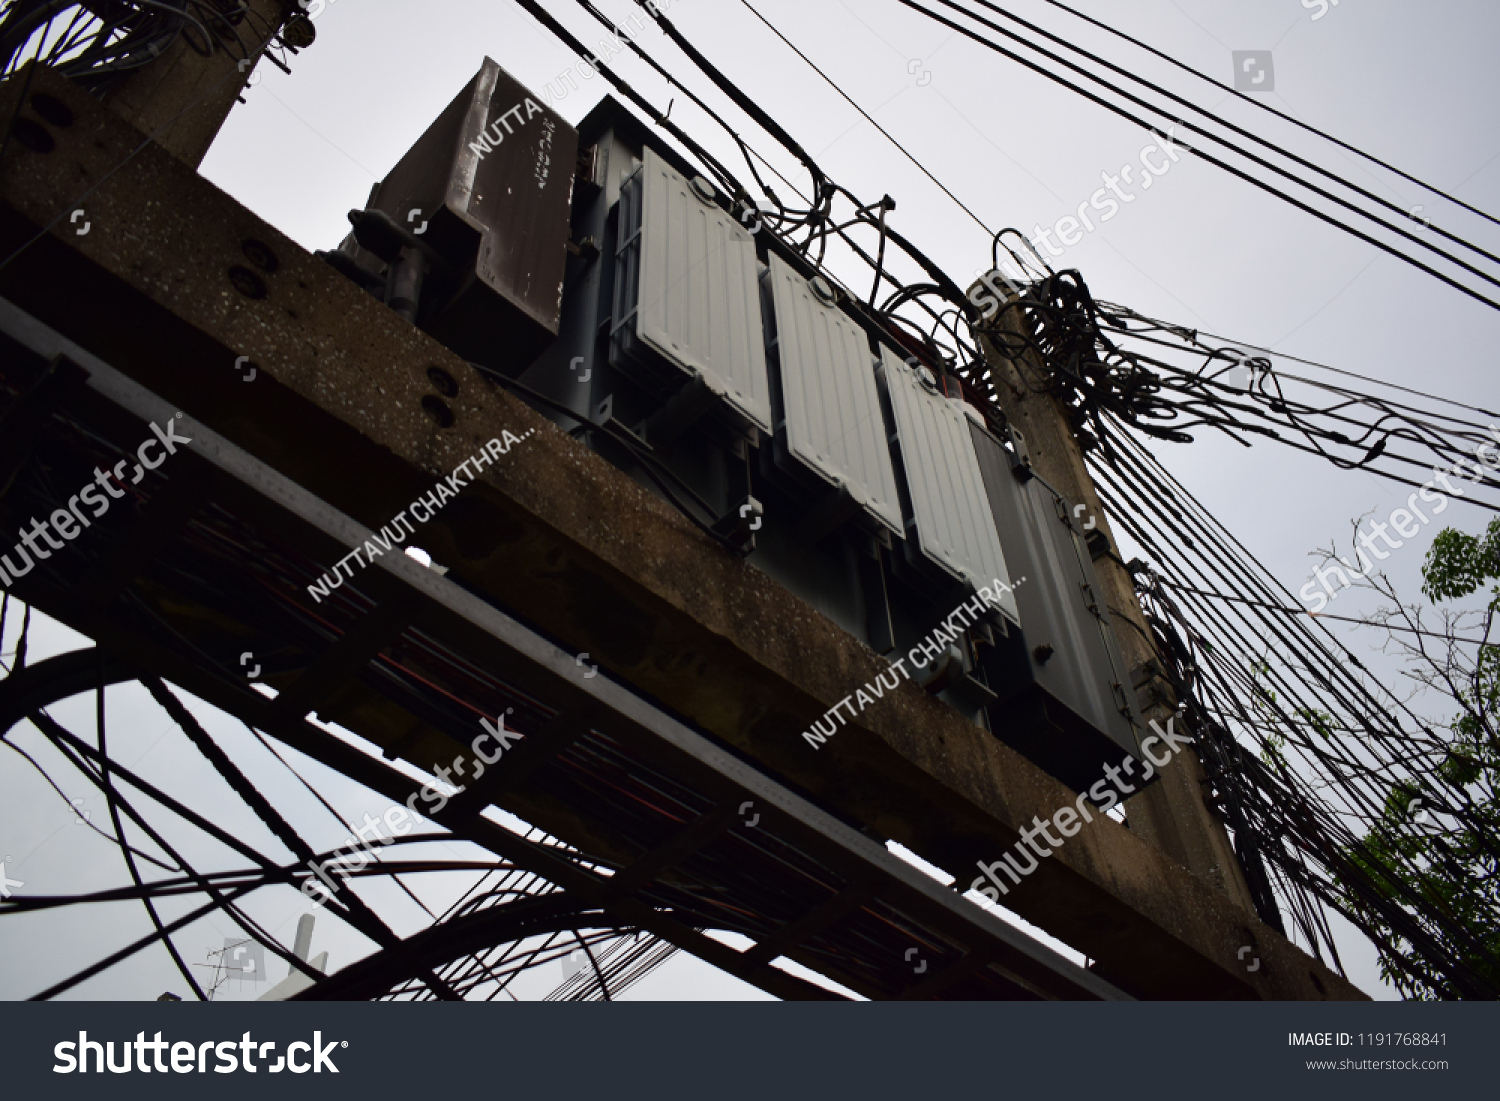 hight resolution of under shot of old steel electricity transformer that was put on conrete structure among distribution of